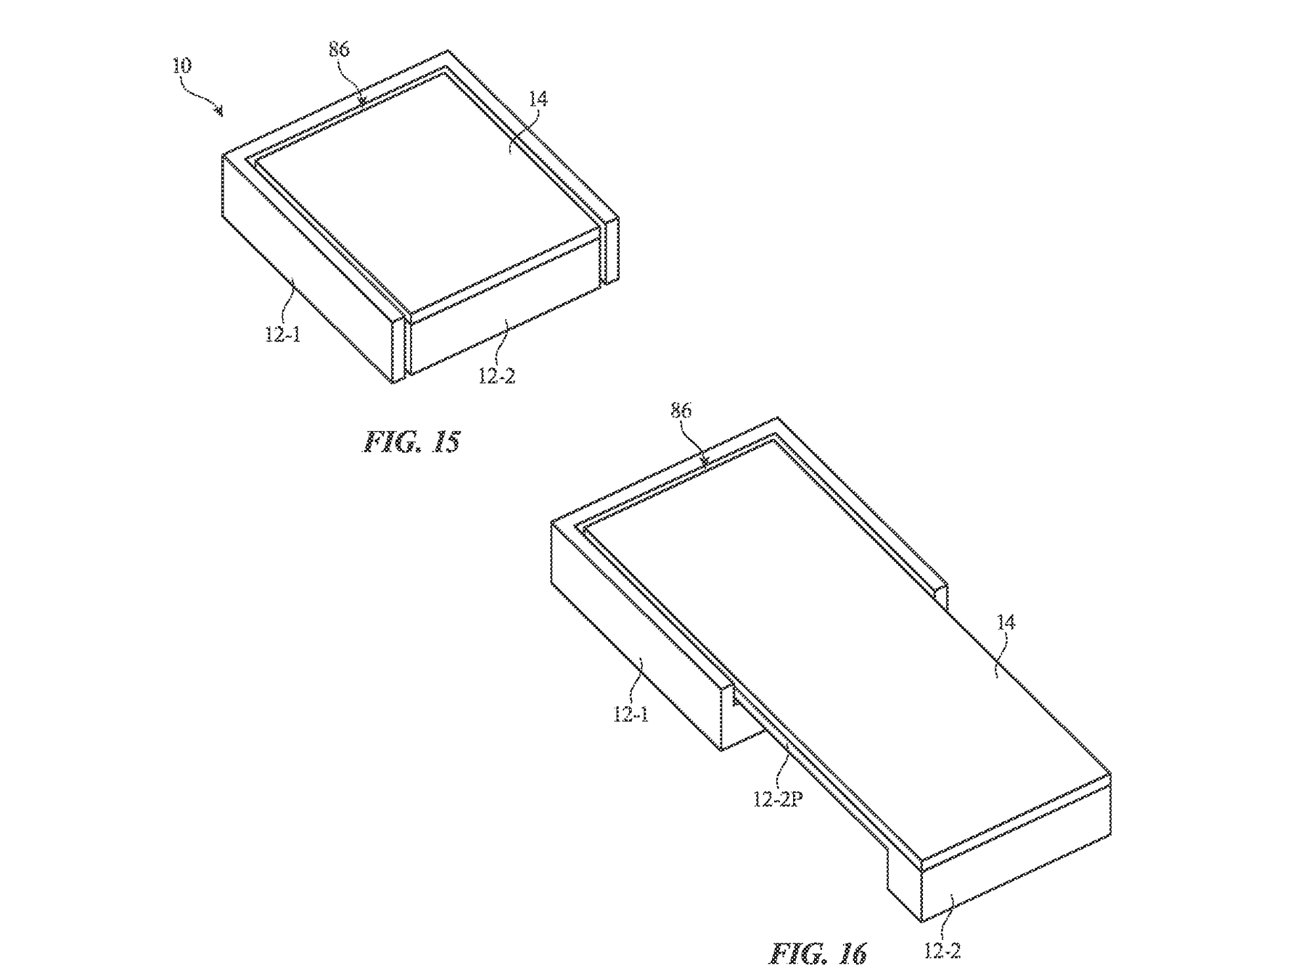 A small-screen device could slide the body down, unfurling a larger display.